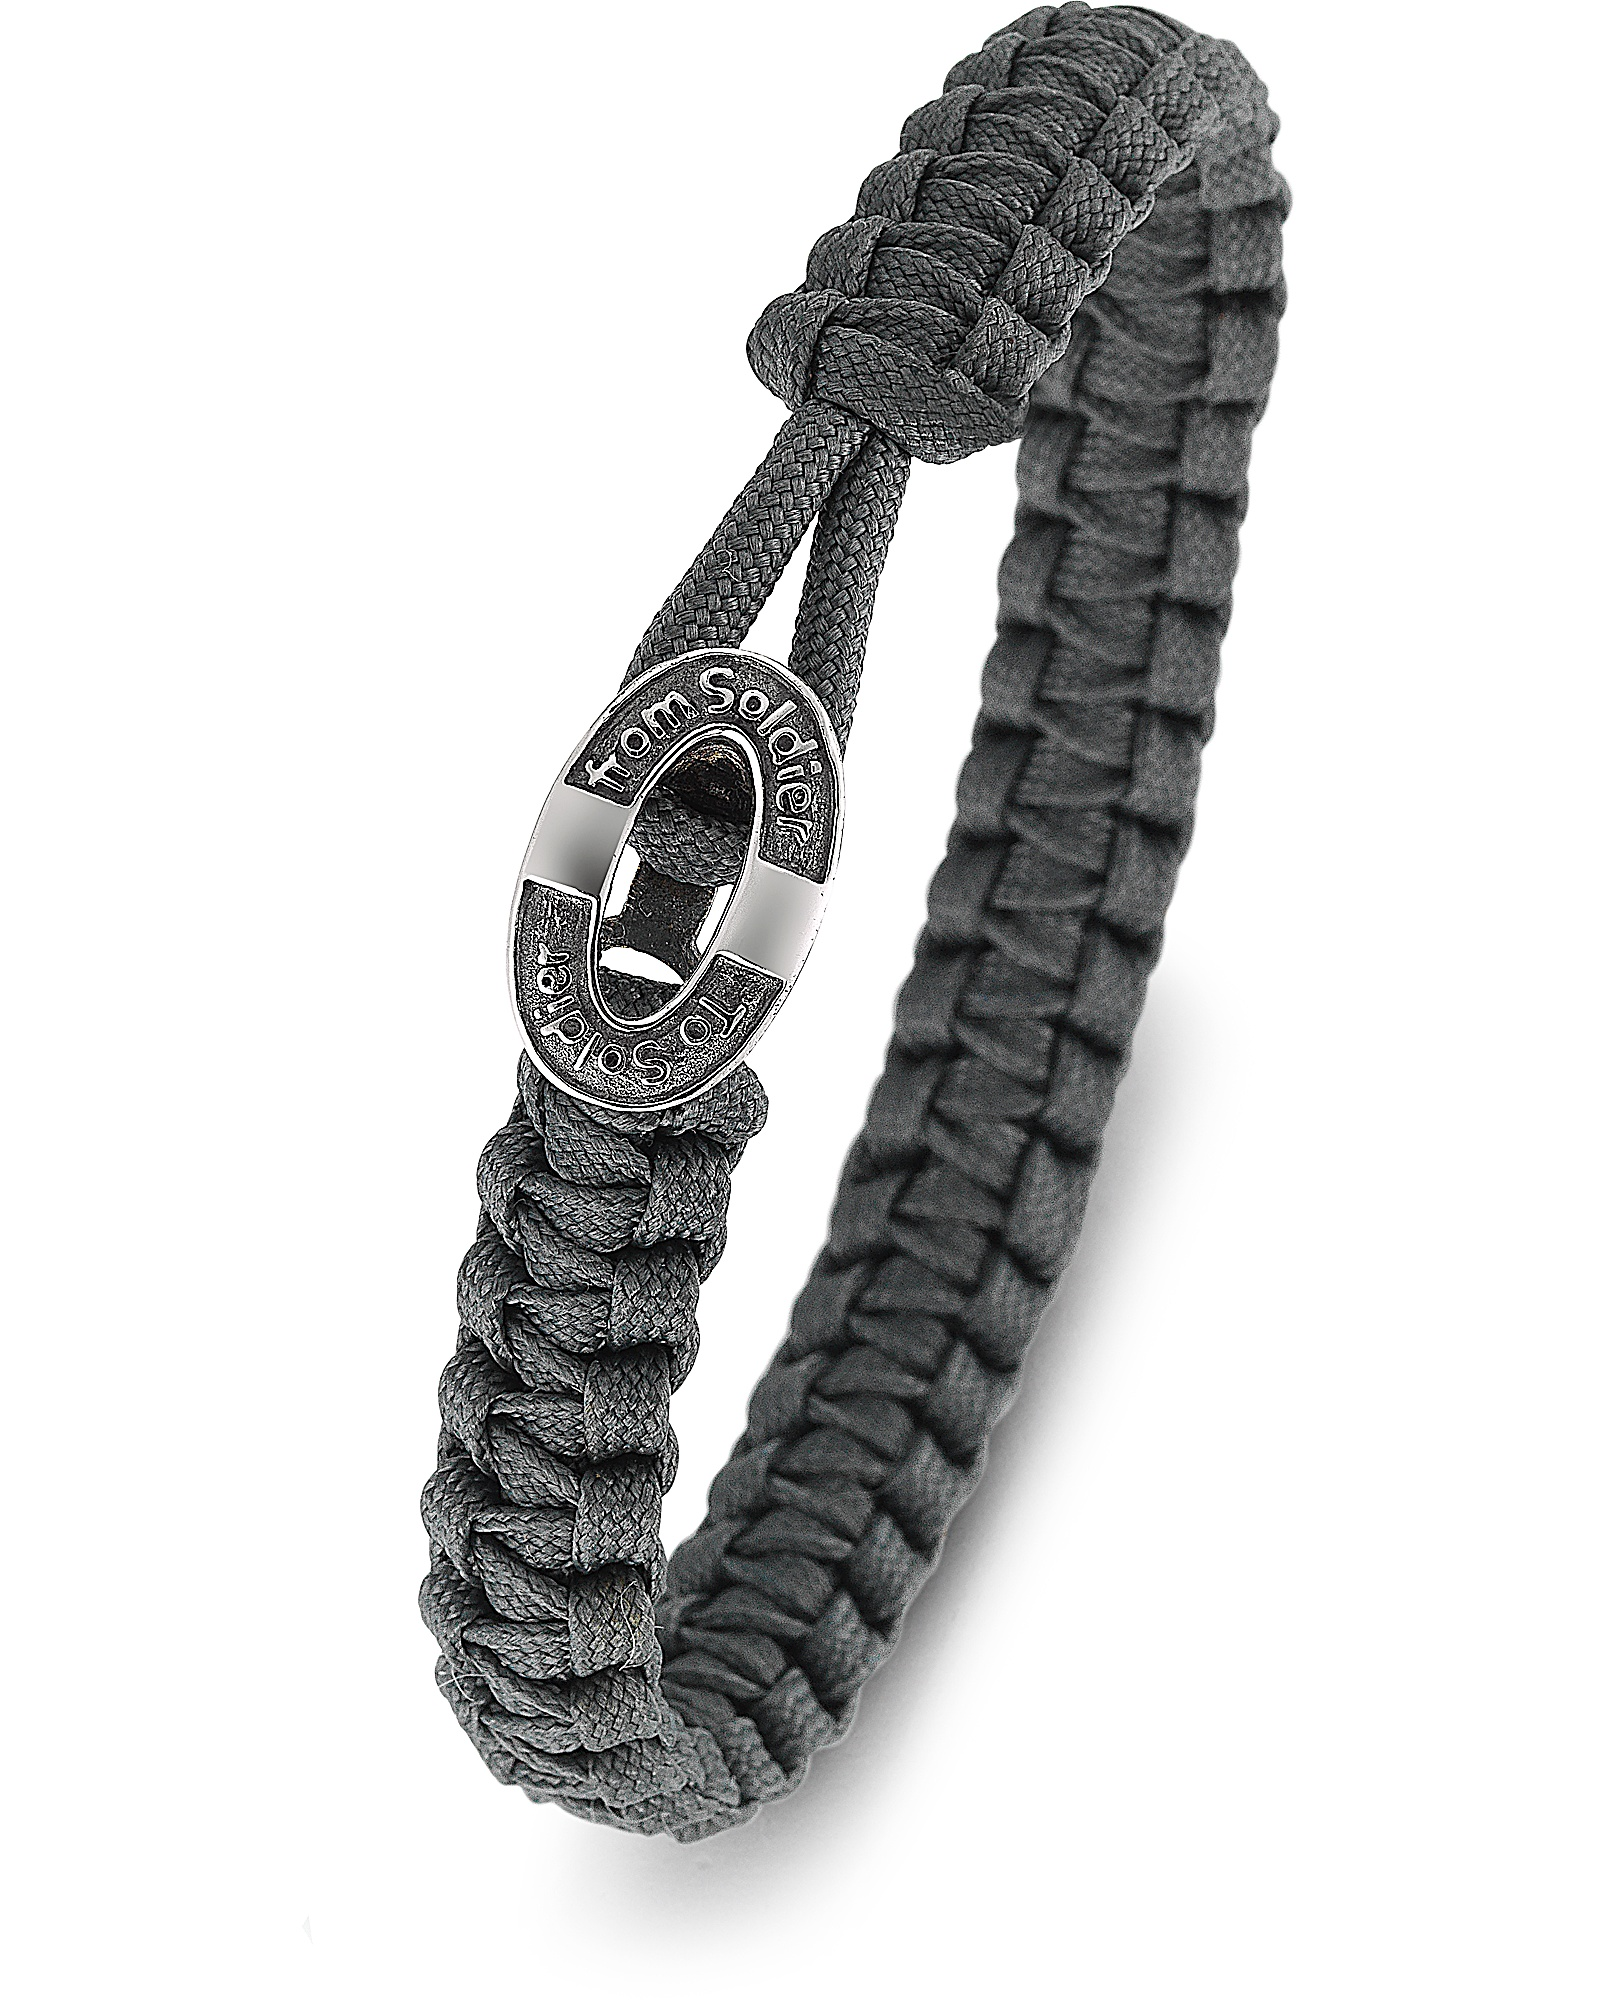 Aagaard From Soldier to soldier armbånd - 07101069 23 centimeter